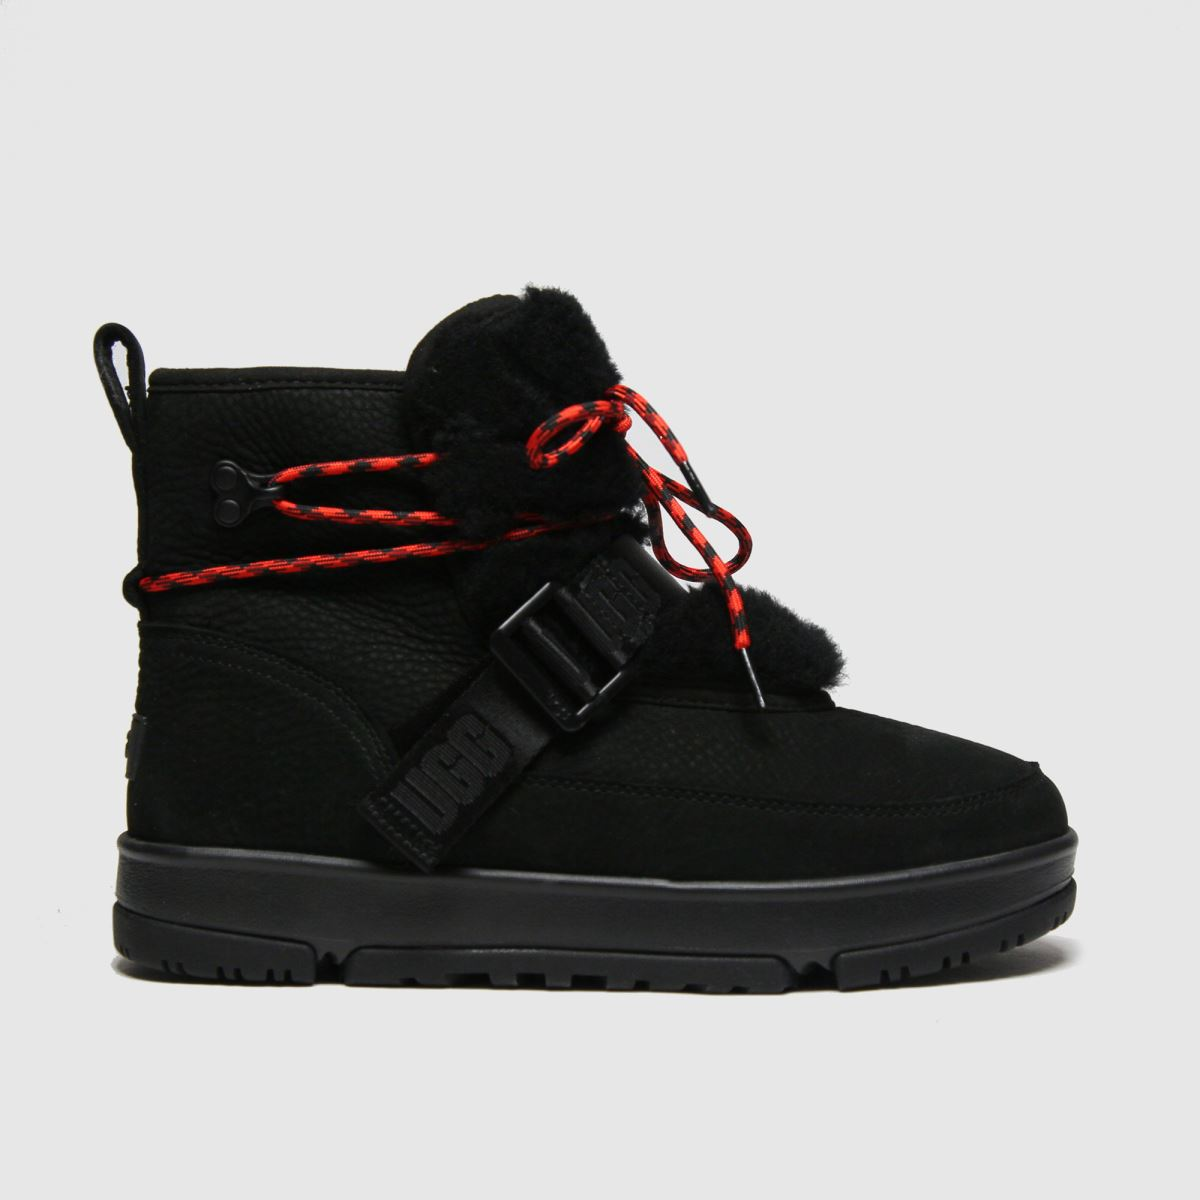 UGG Black Classic Weather Hiker Boots